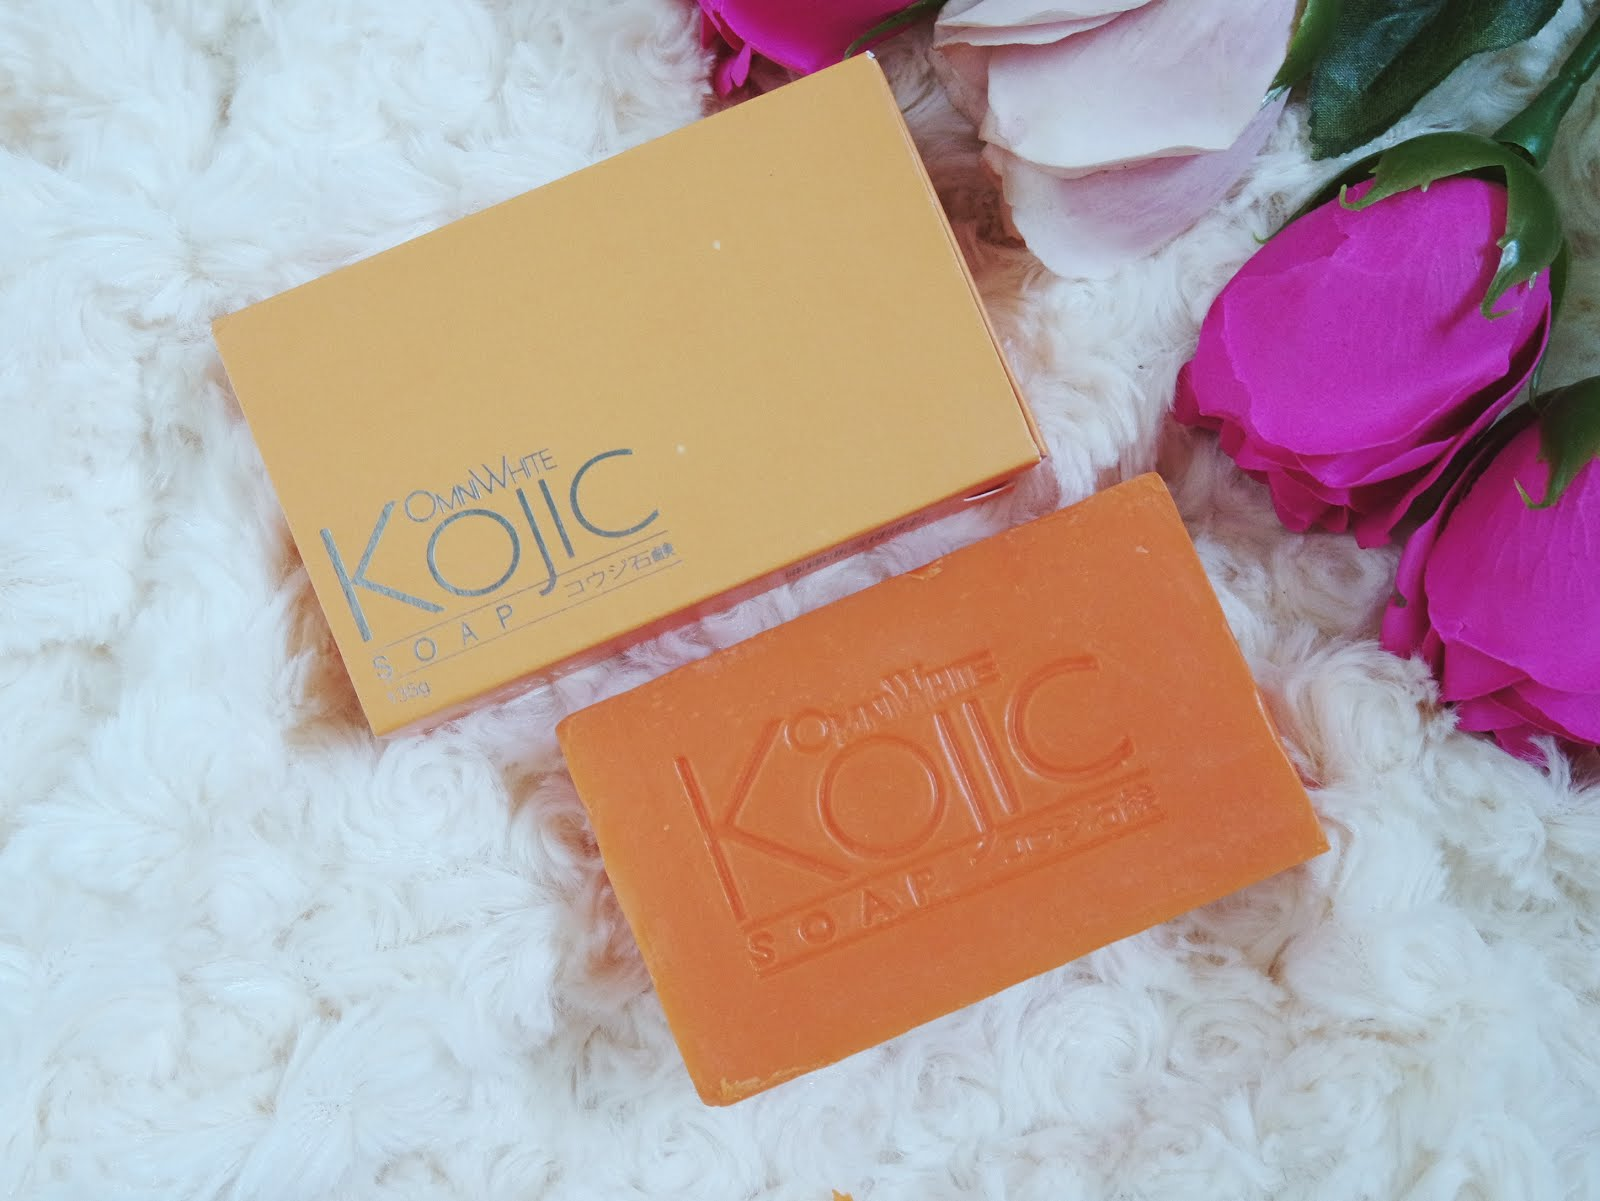 Omni White Kojic Soap and Whitening Soap (from JC Premiere) Review